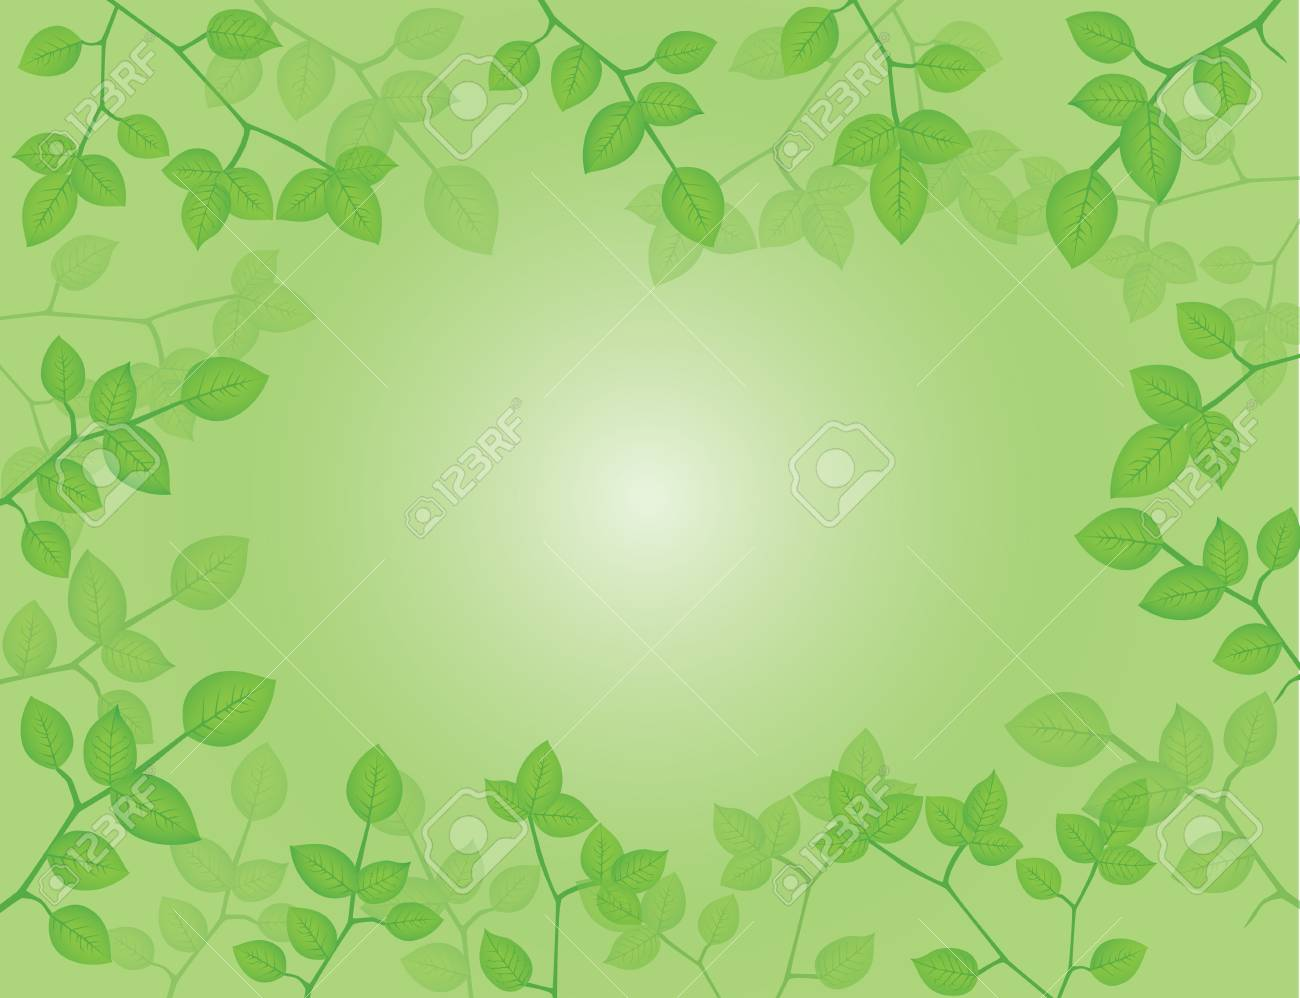 Vector Illustration of Nature Background Stock Vector - 14805783